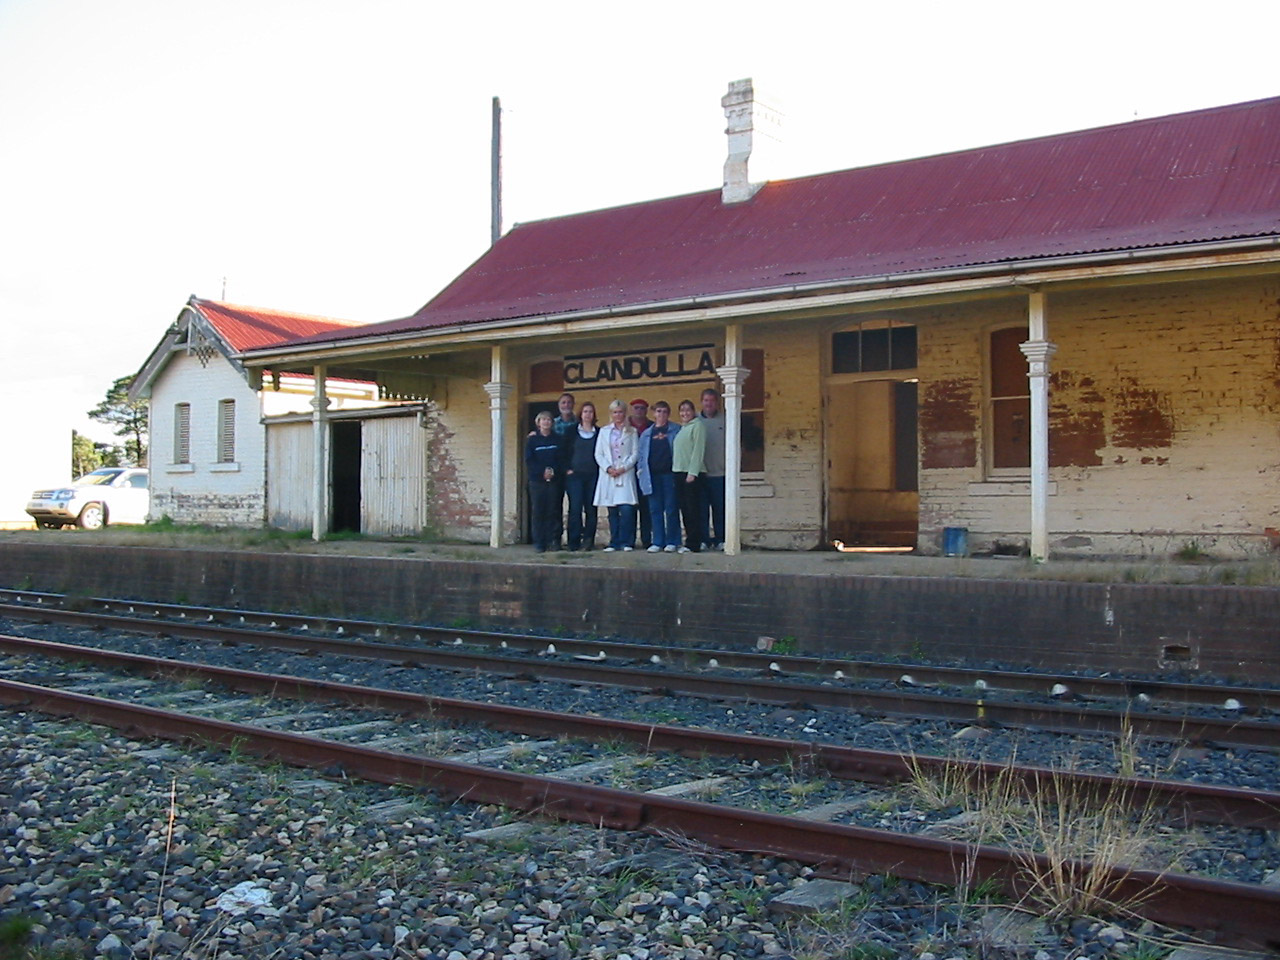 Group at Clandulla Station saying Good-bye